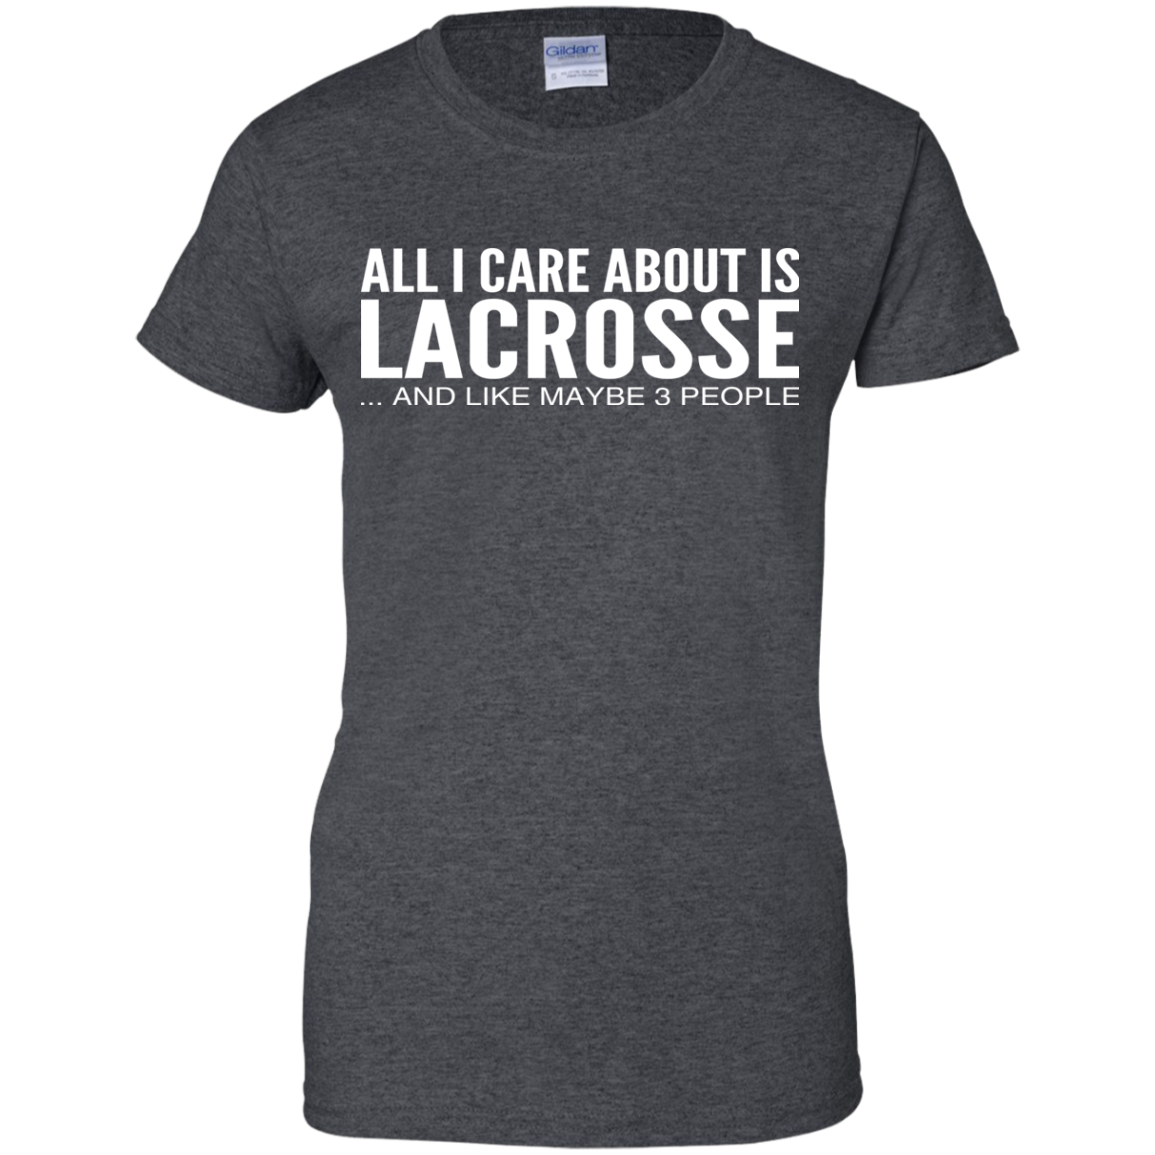 All I Care About Is Lacrosse And Like Maybe 3 People Ladies Tees